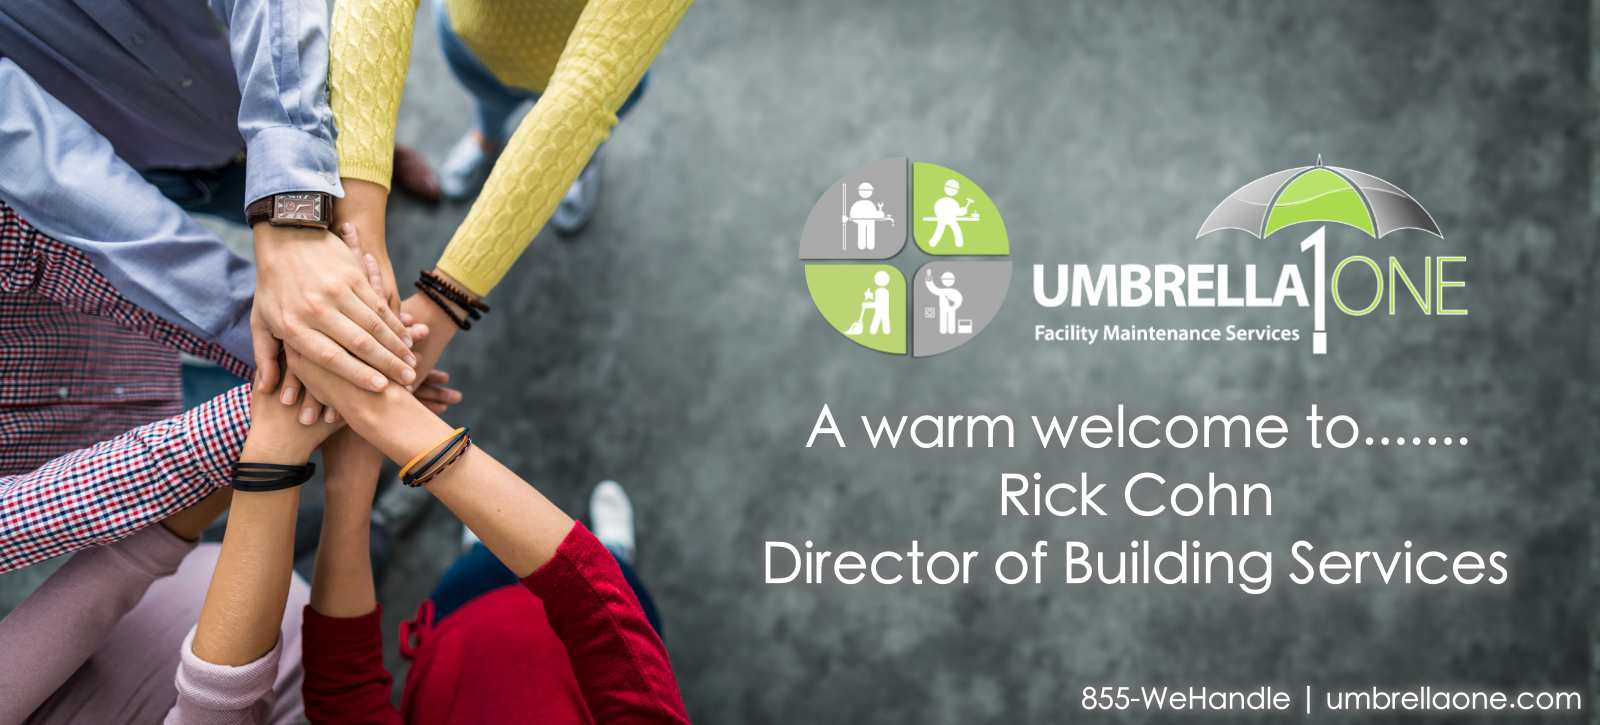 UmbrellaOne welcomes its new Director of Building Services, Rick Cohn.